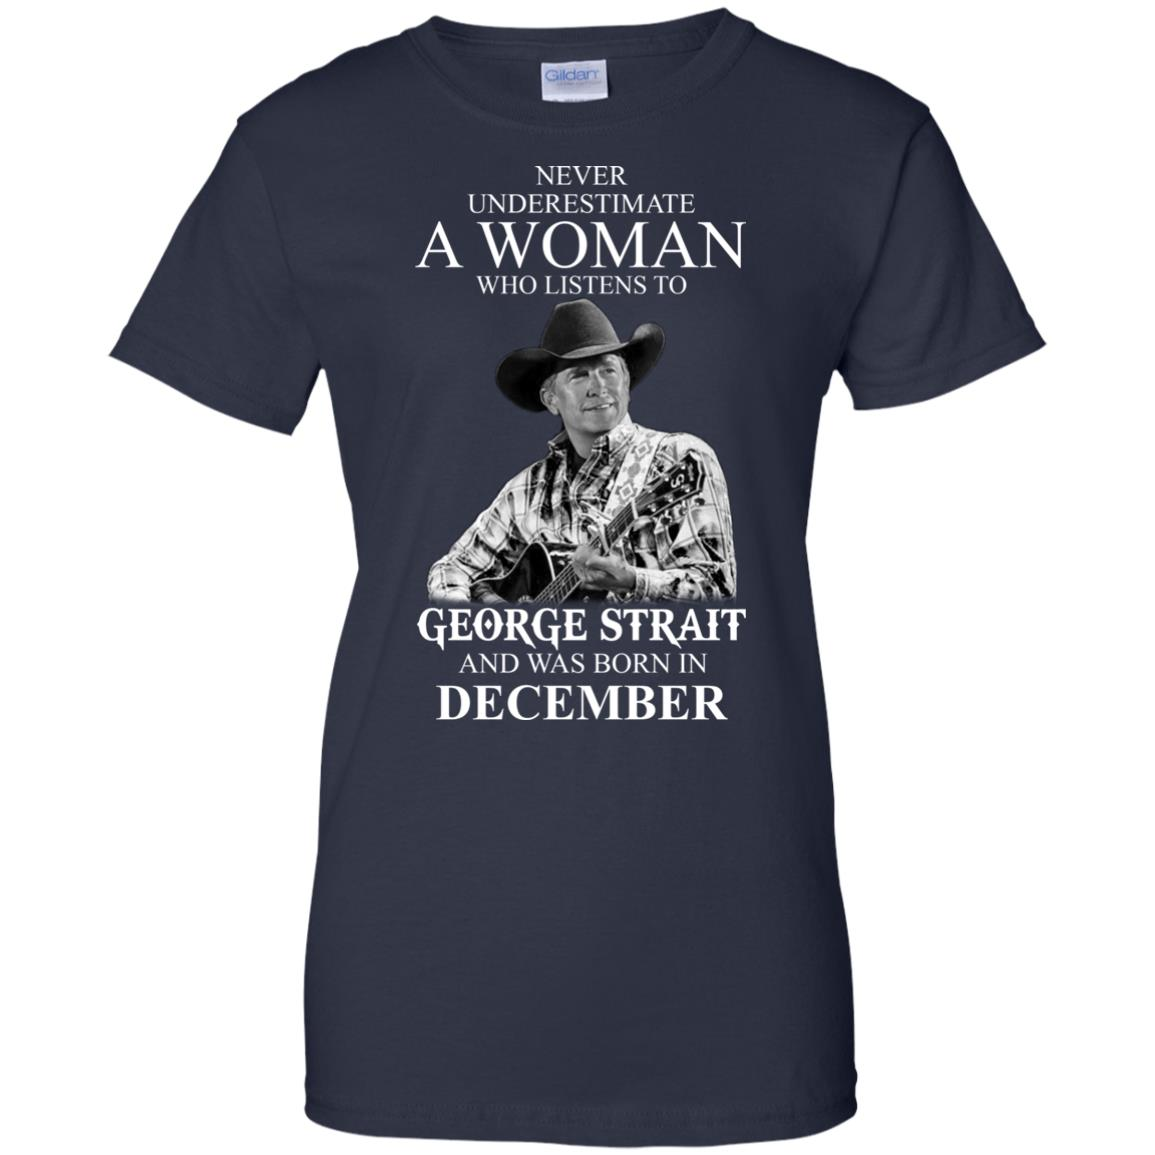 image 349 - Never Underestimate A Woman Who Listens To George Strait And Was Born In December shirt